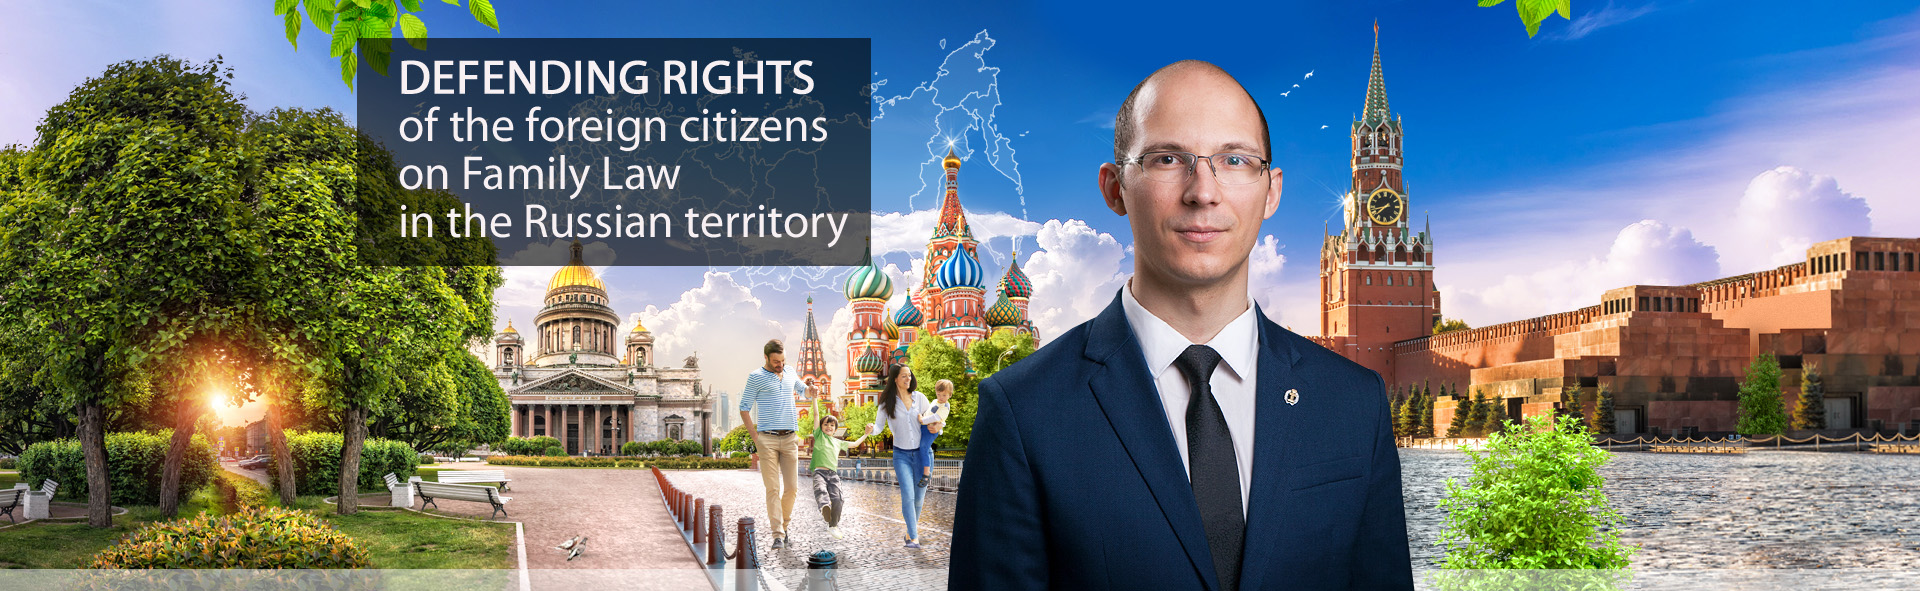 Protection of the rights of foreign citizens under family law in Russia